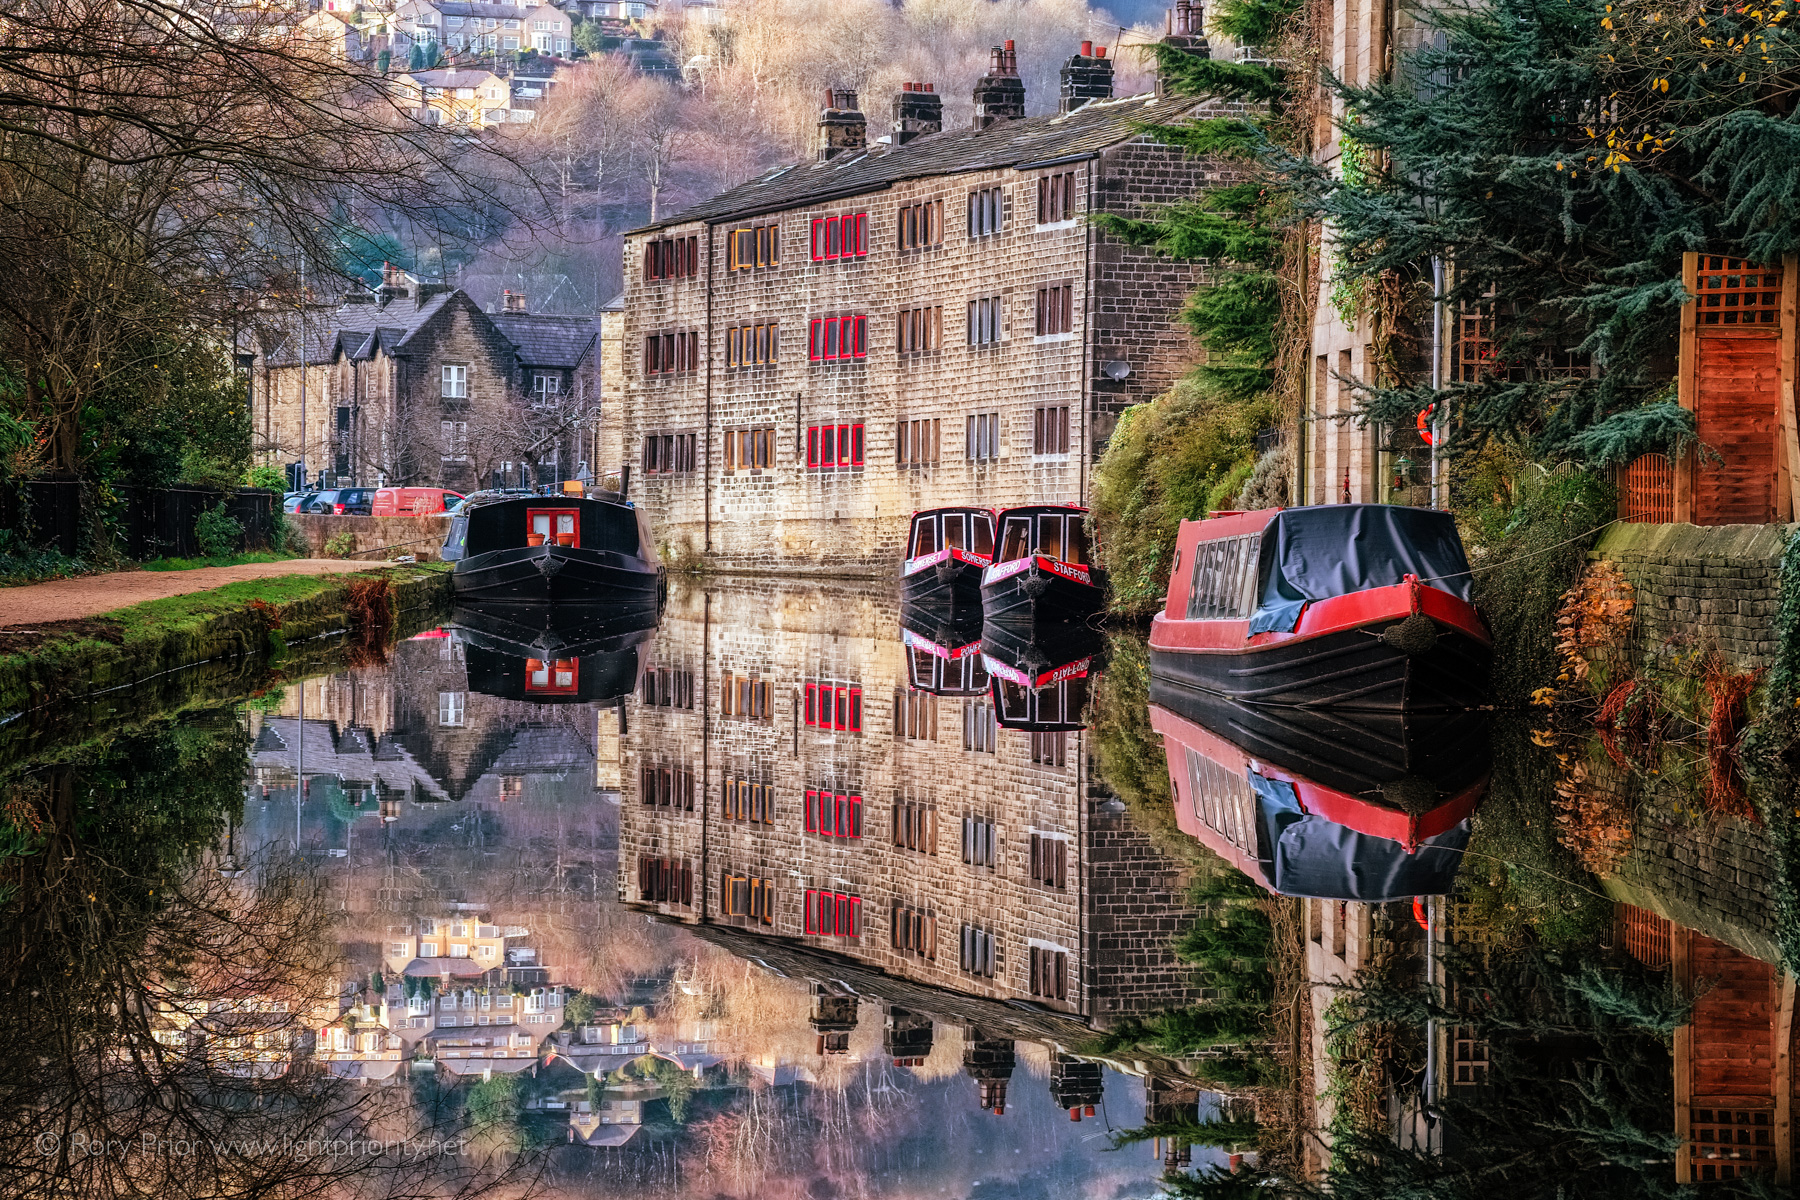 A view of the Rochdale Canal with houses and barges mirrored in the perfectly still water.